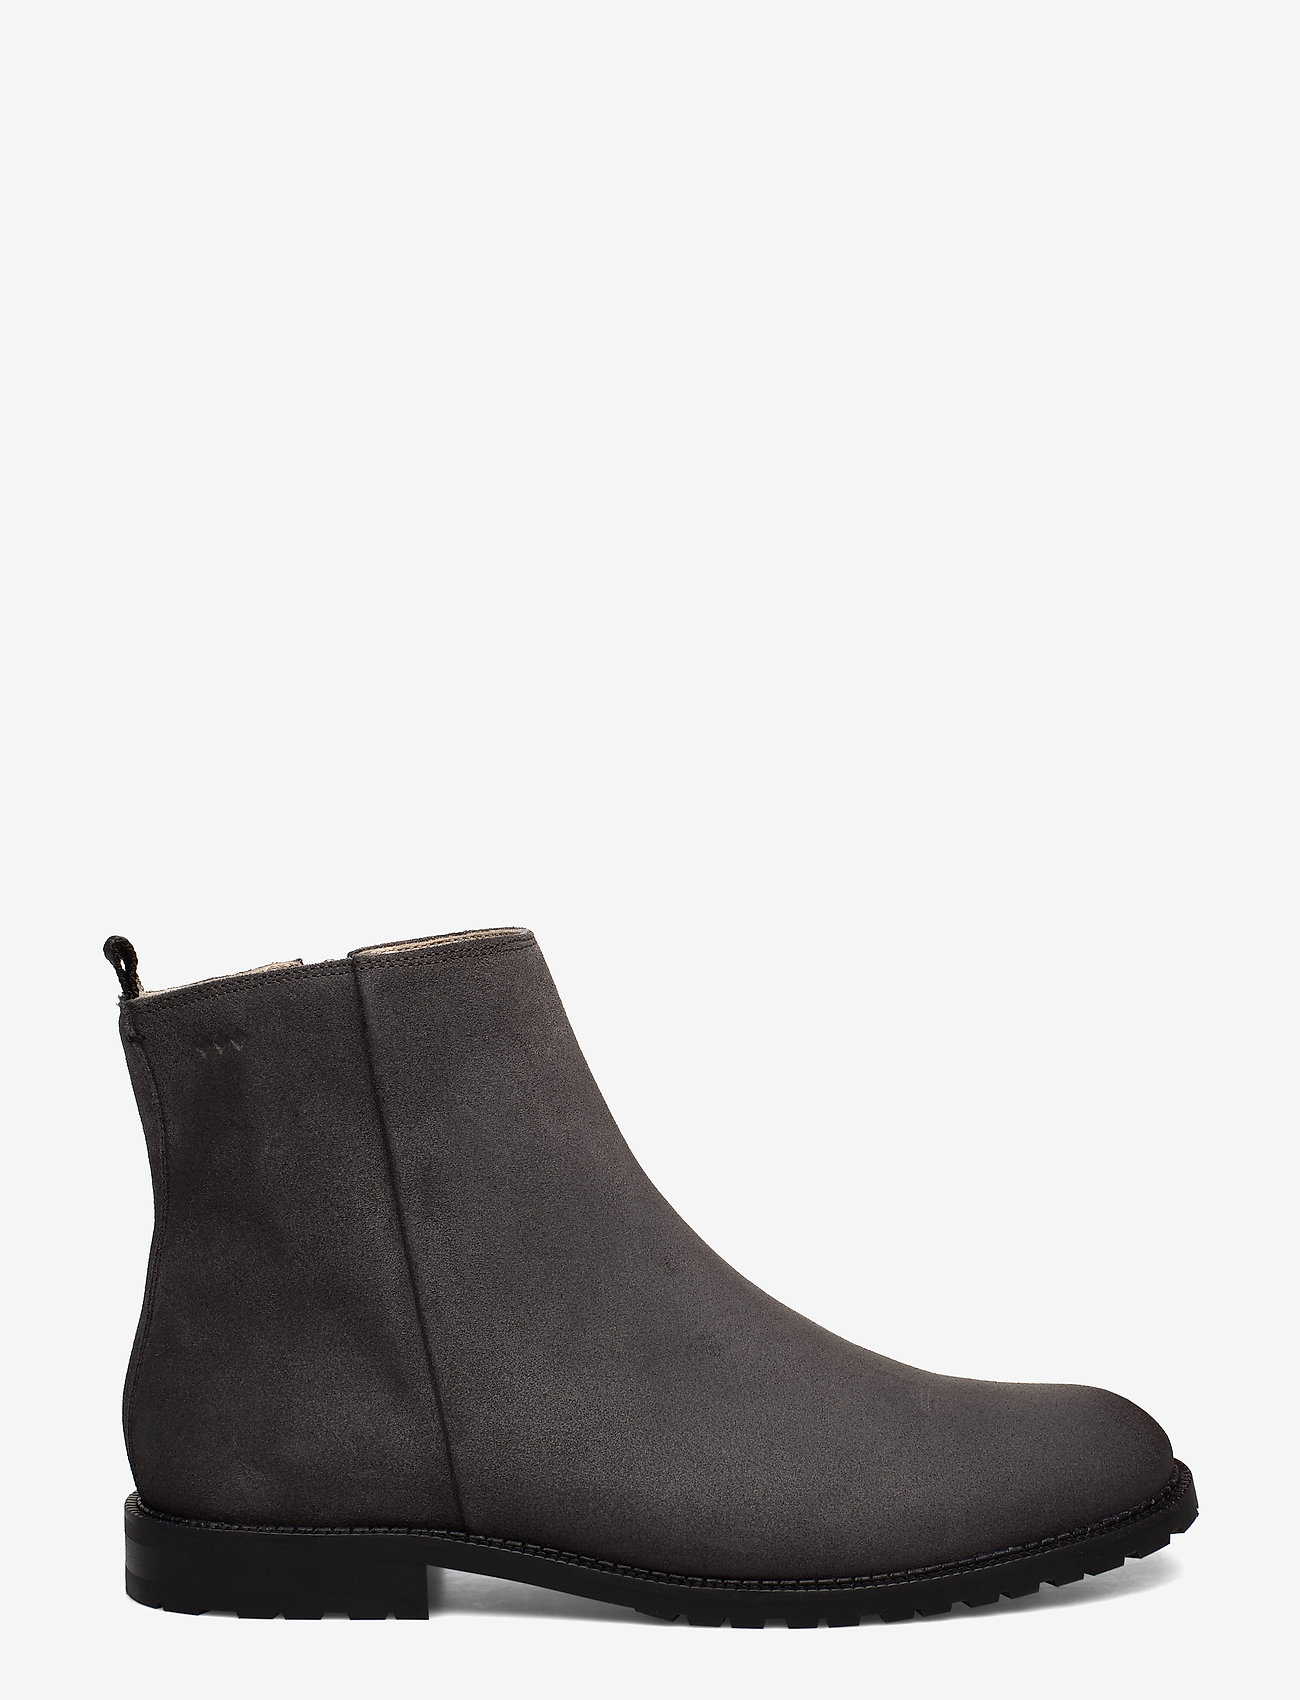 Alias City Hiker Suede Ankle Boot (Anthracite) (108 €) - Royal RepubliQ F1WxH